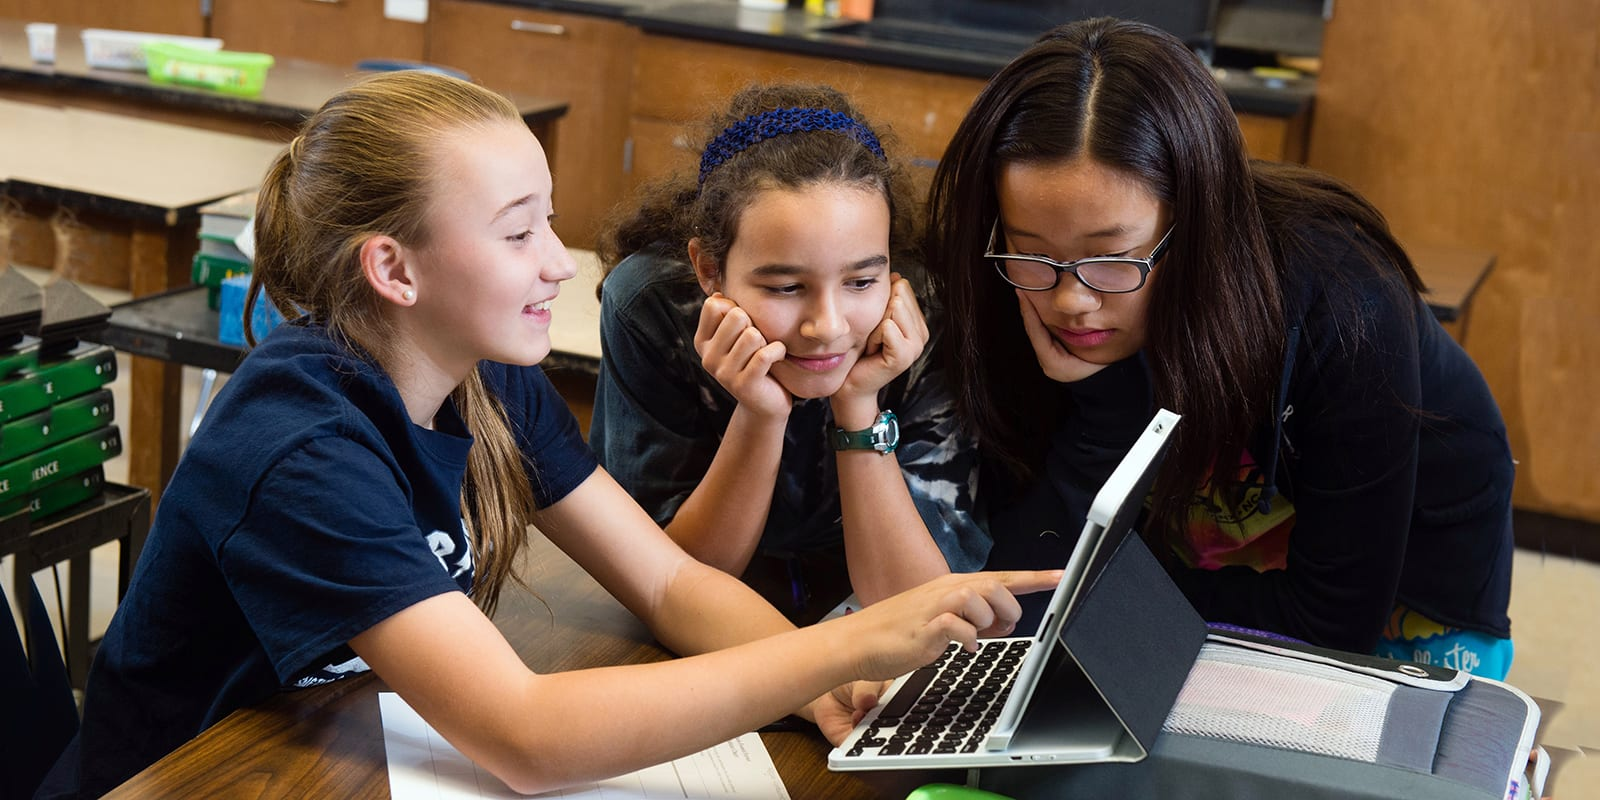 Photo of middle school aged girls sharing a laptop